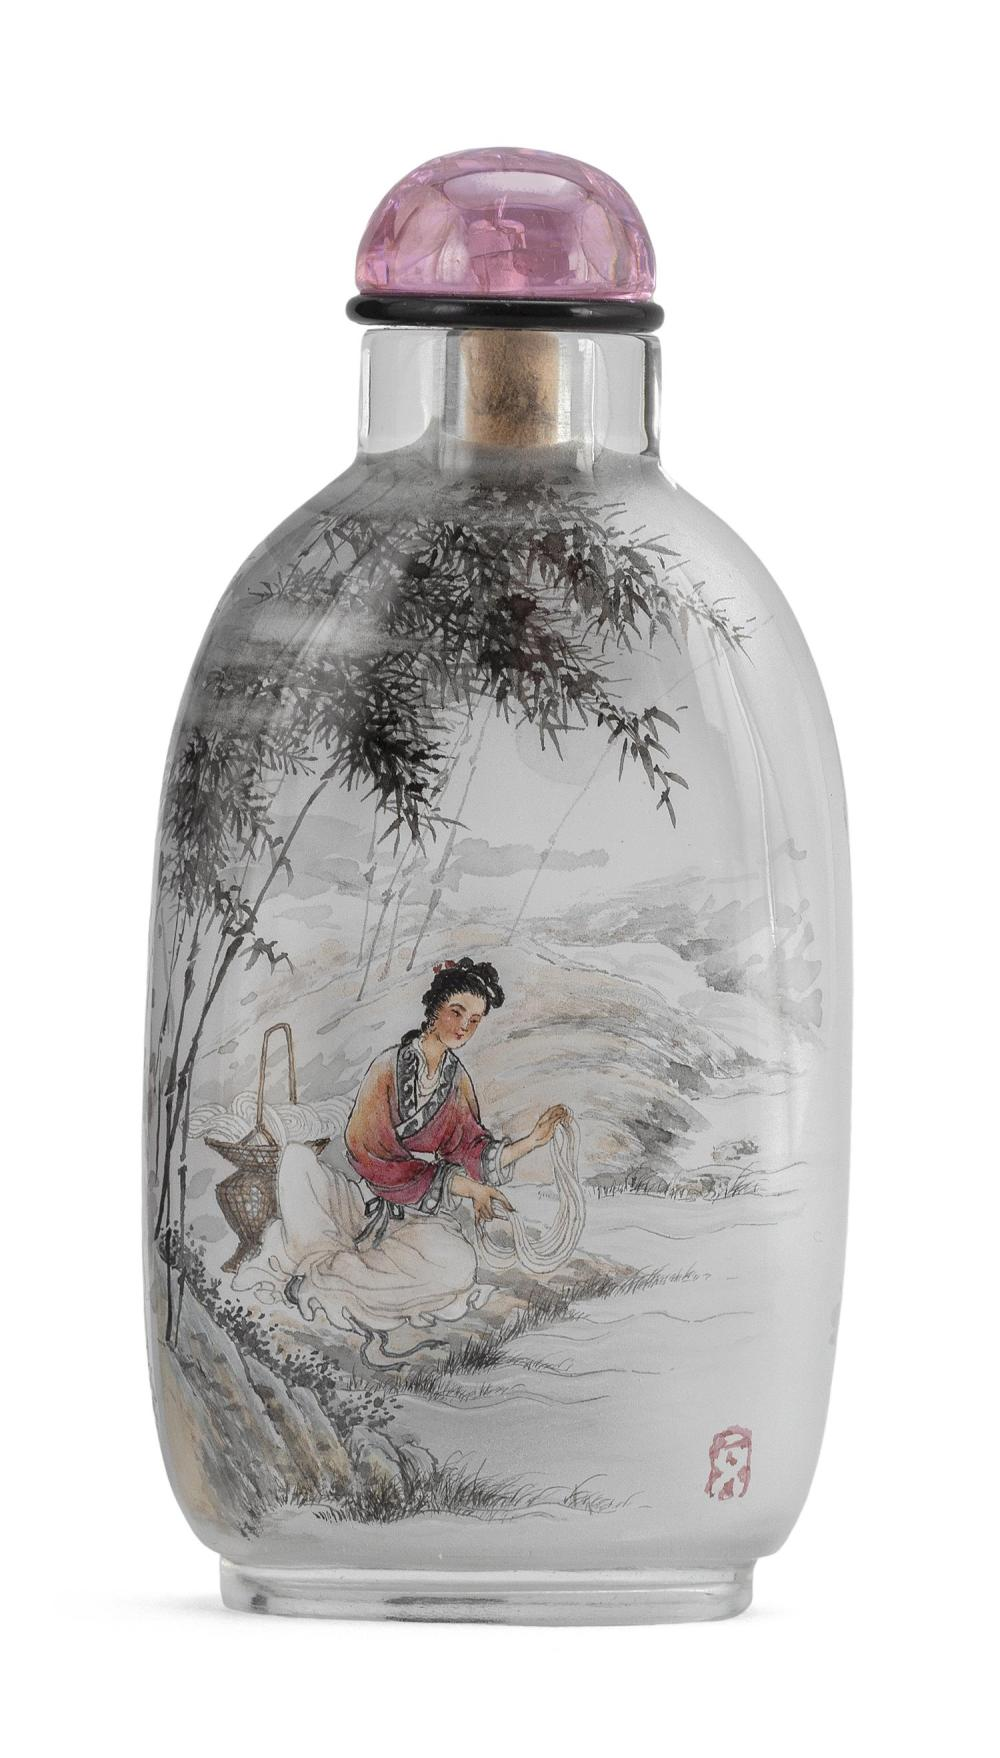 CHINESE INTERIOR-PAINTED GLASS SNUFF BOTTLE By Dong Xue in collaboration with his daughter. Modified rectangular bottle with figural...